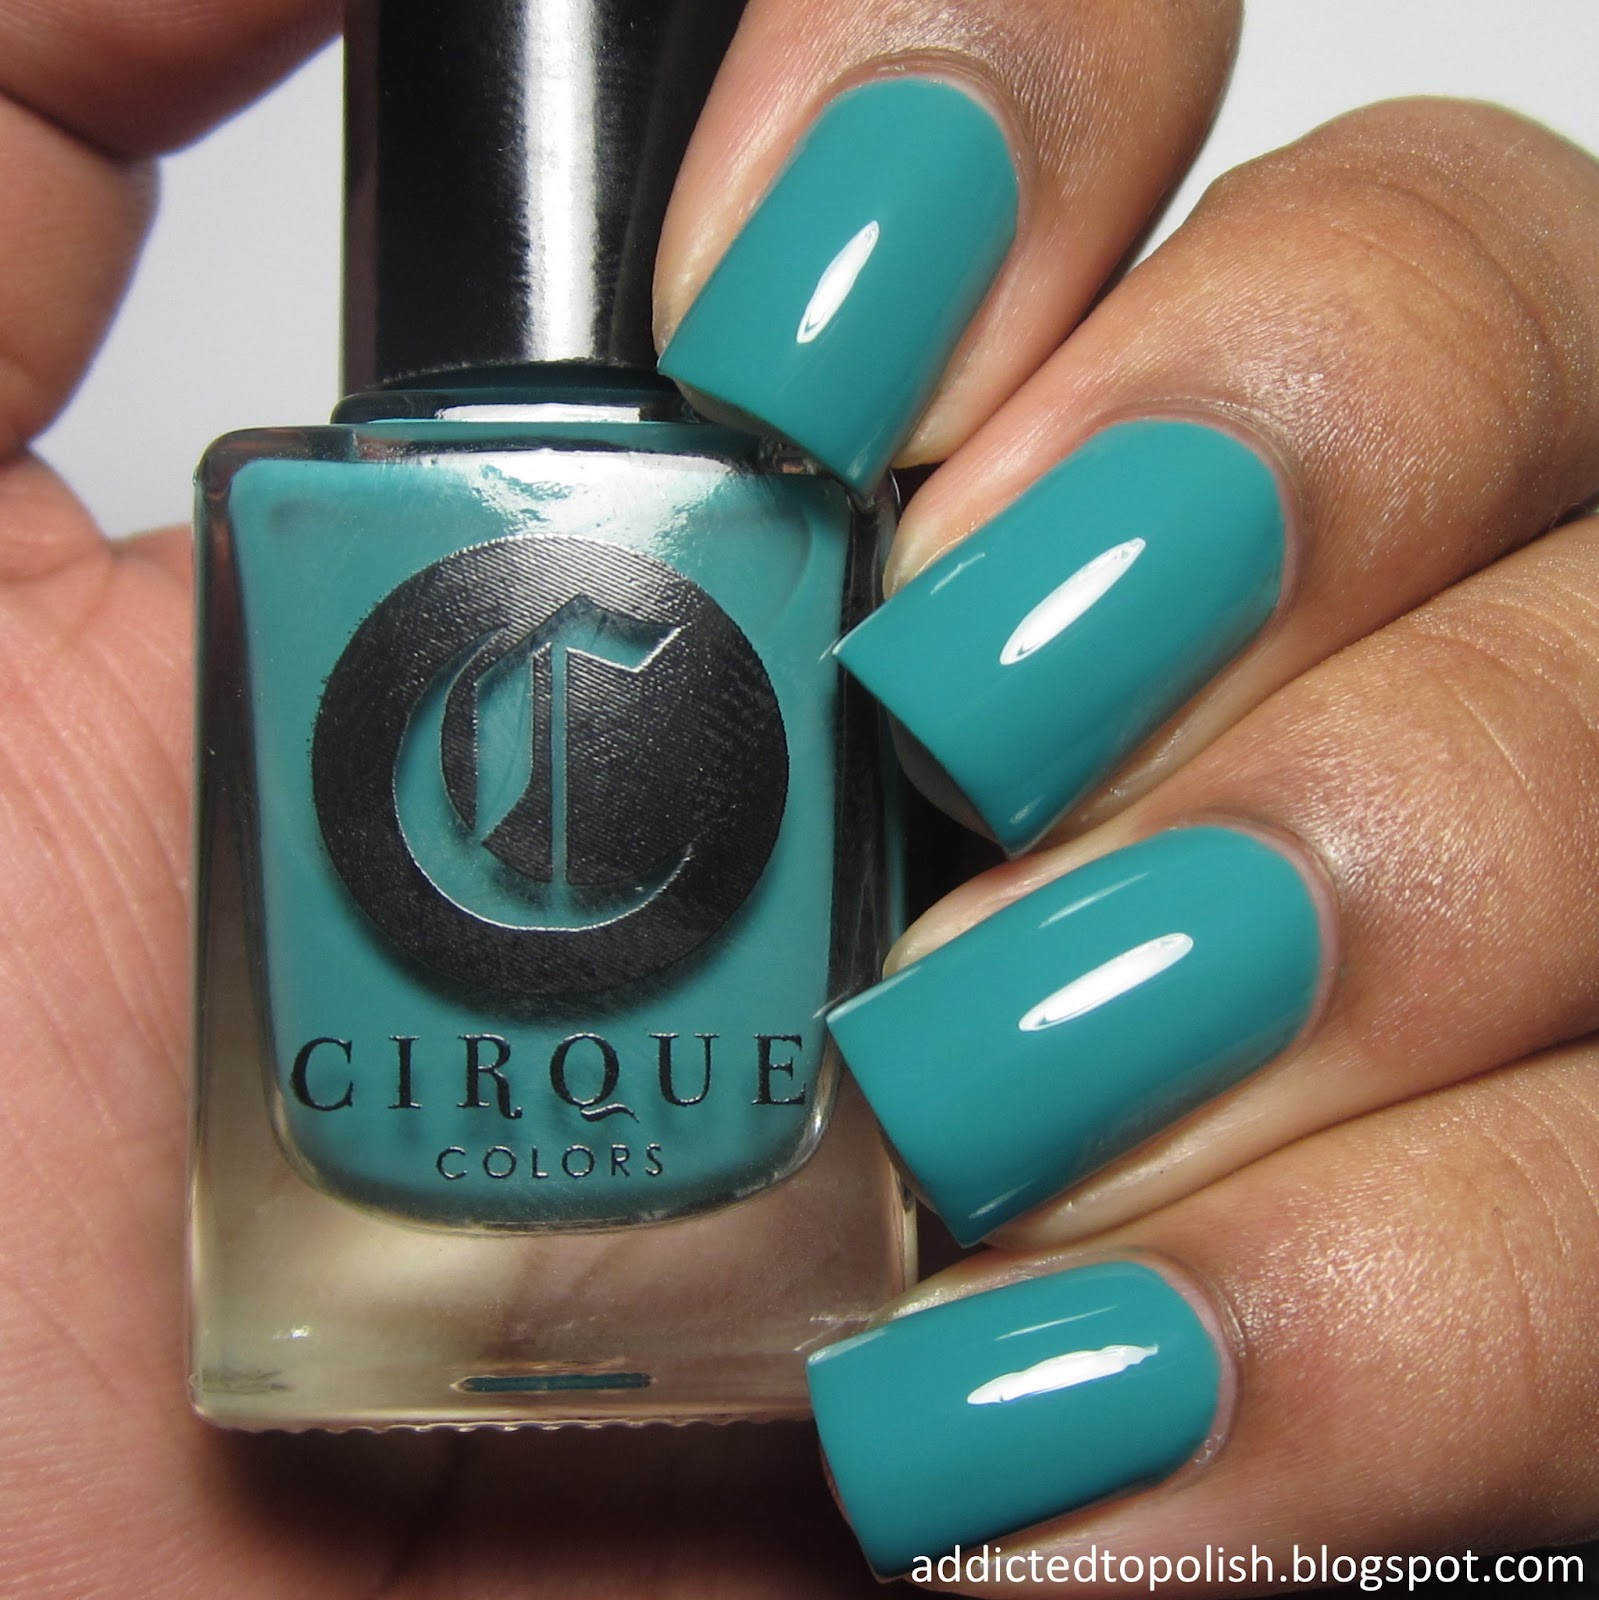 cirque colors lady liberty metropolis